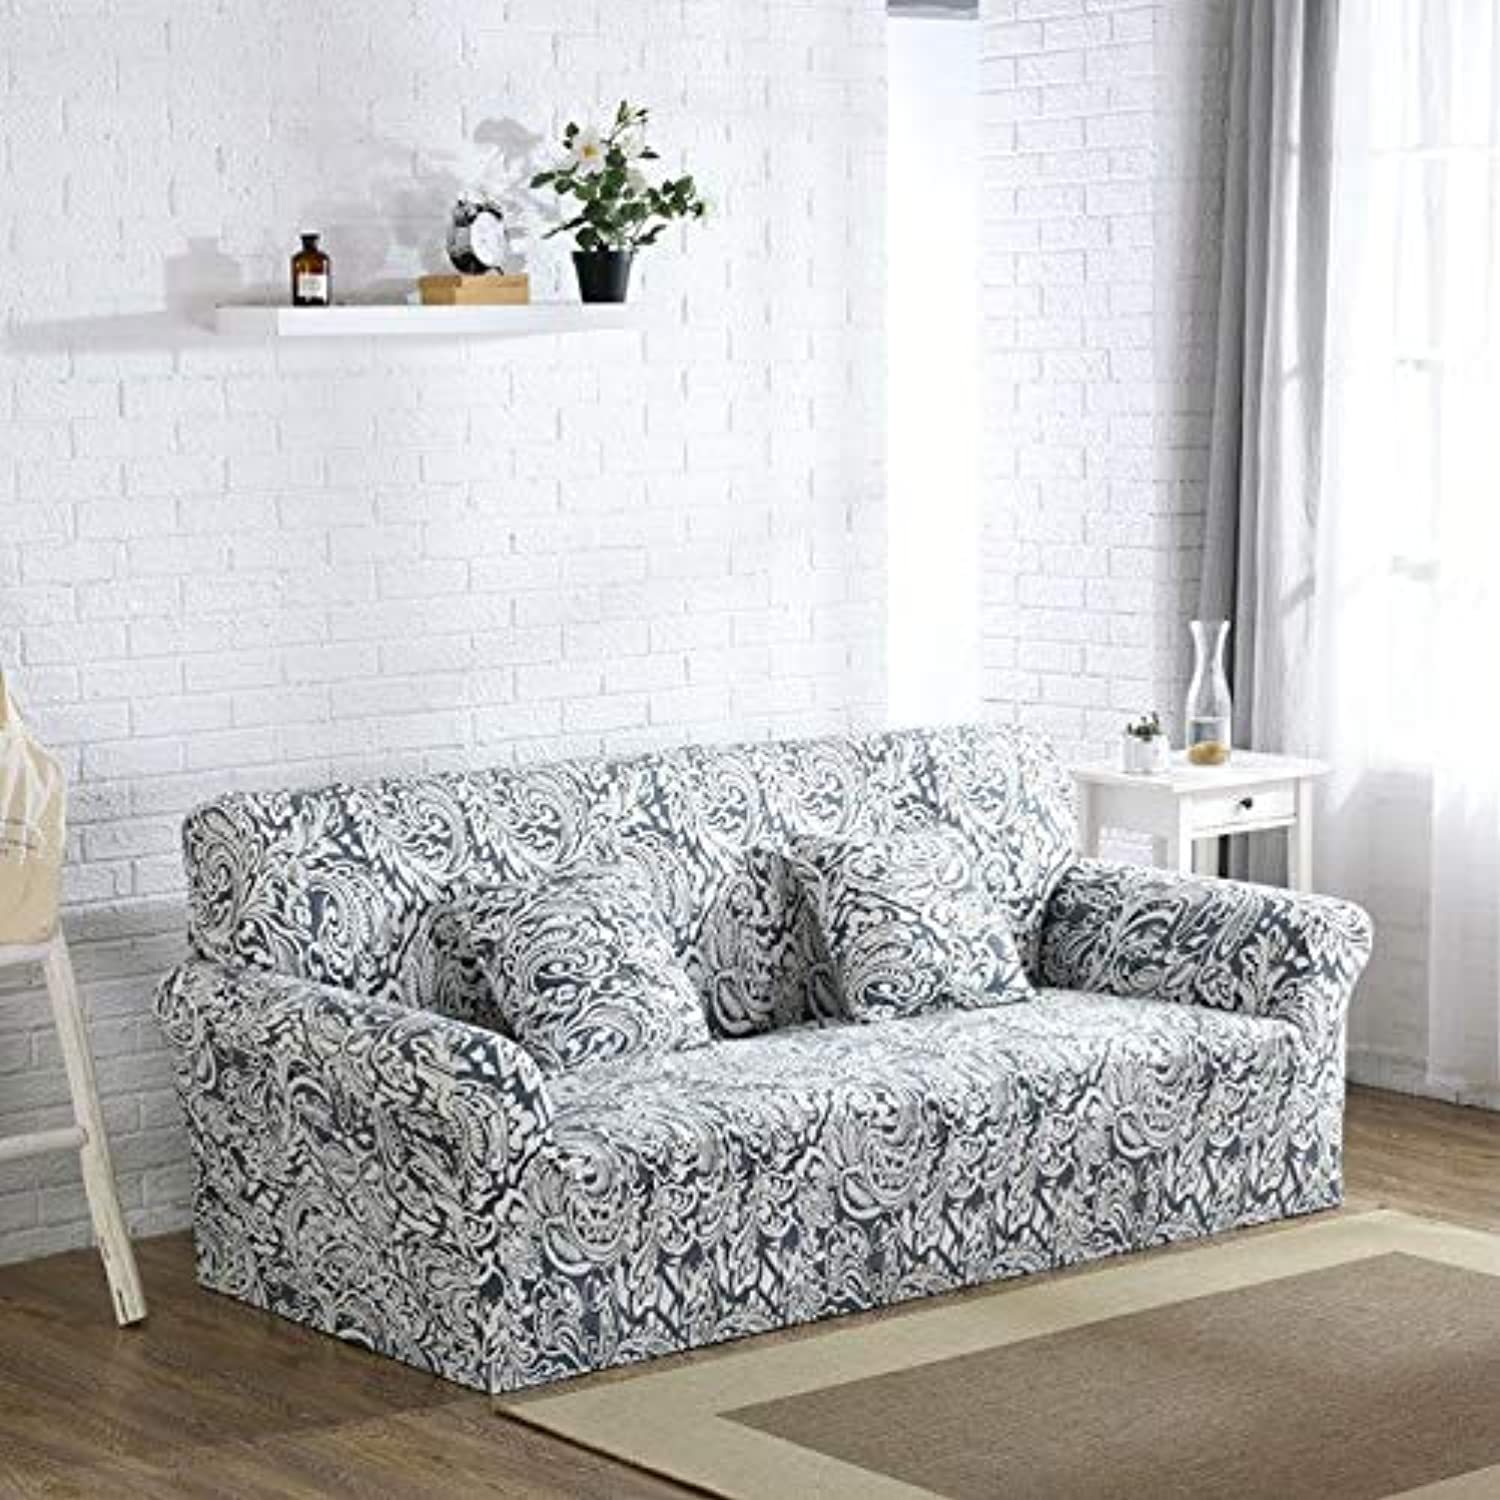 Farmerly Dreamworld Floral Sofa Cover Spandex colorful Covers for Sofas Elastic Sofa Cover for Furniture Living Room Singel Double   FWH, Single 90-140CM